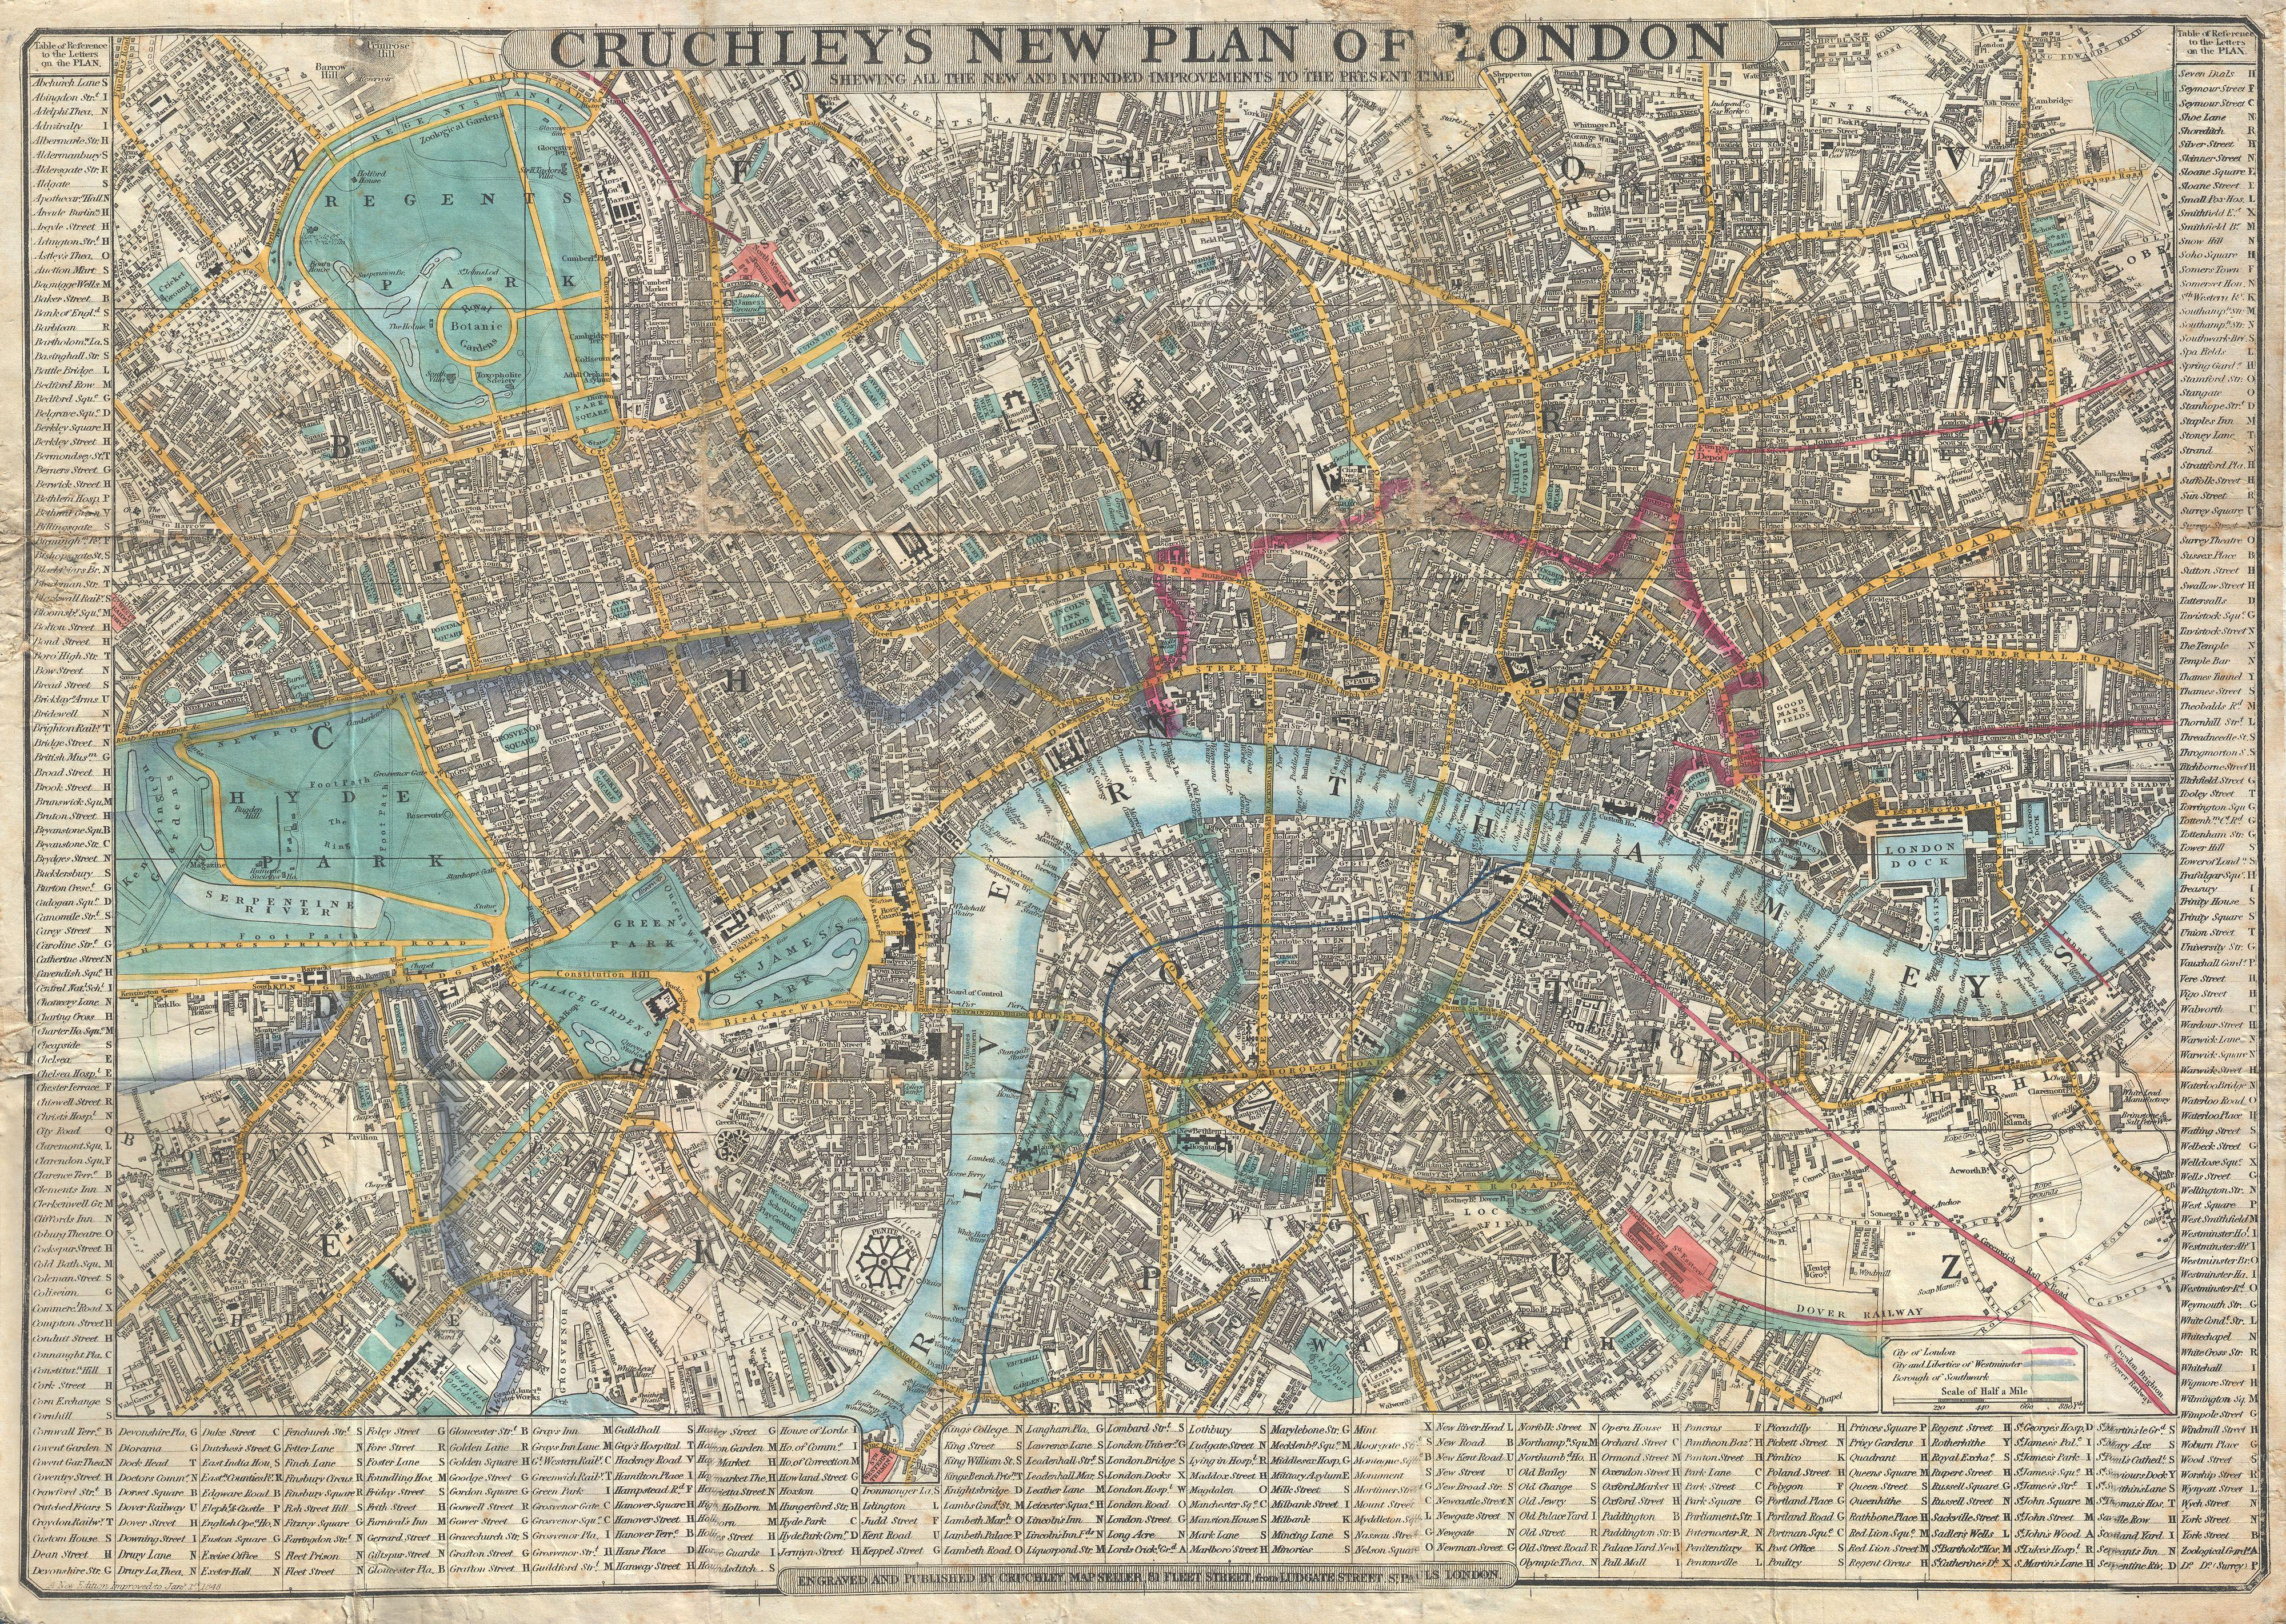 Map Of London England And Surrounding Area.File 1848 Crutchley Pocket Map Or Plan Of London England